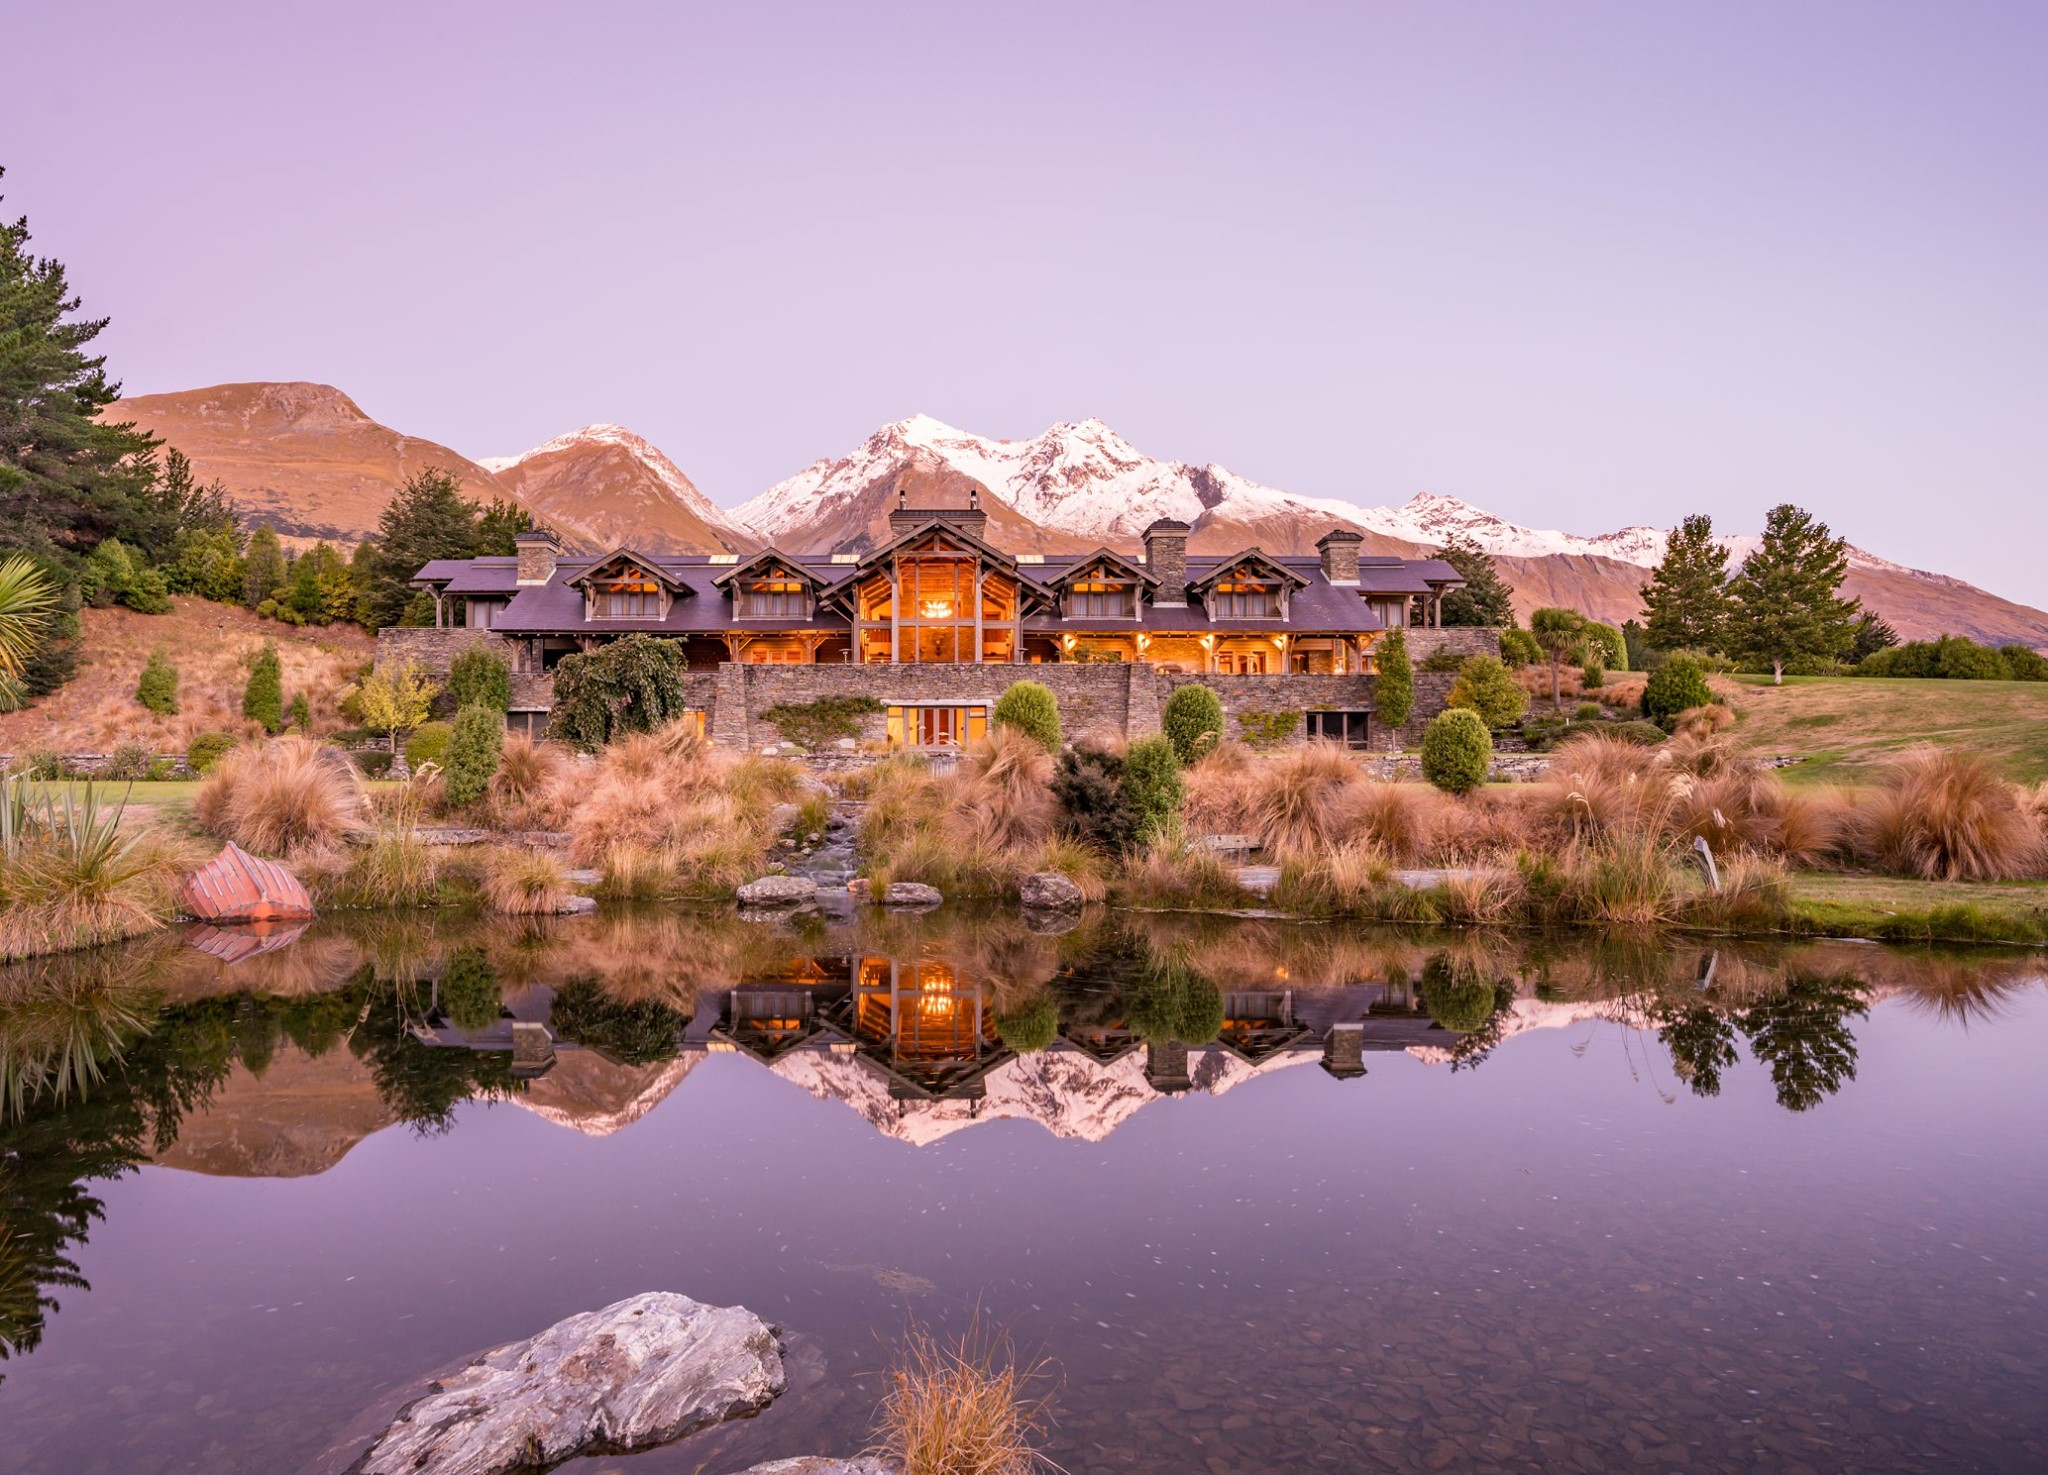 With world-class dining, spectacular scenery, and authentic kiwi hospitality, traveling through New Zealand via its acclaimed luxury lodges is the best way to capture the essence of this remarkable land.